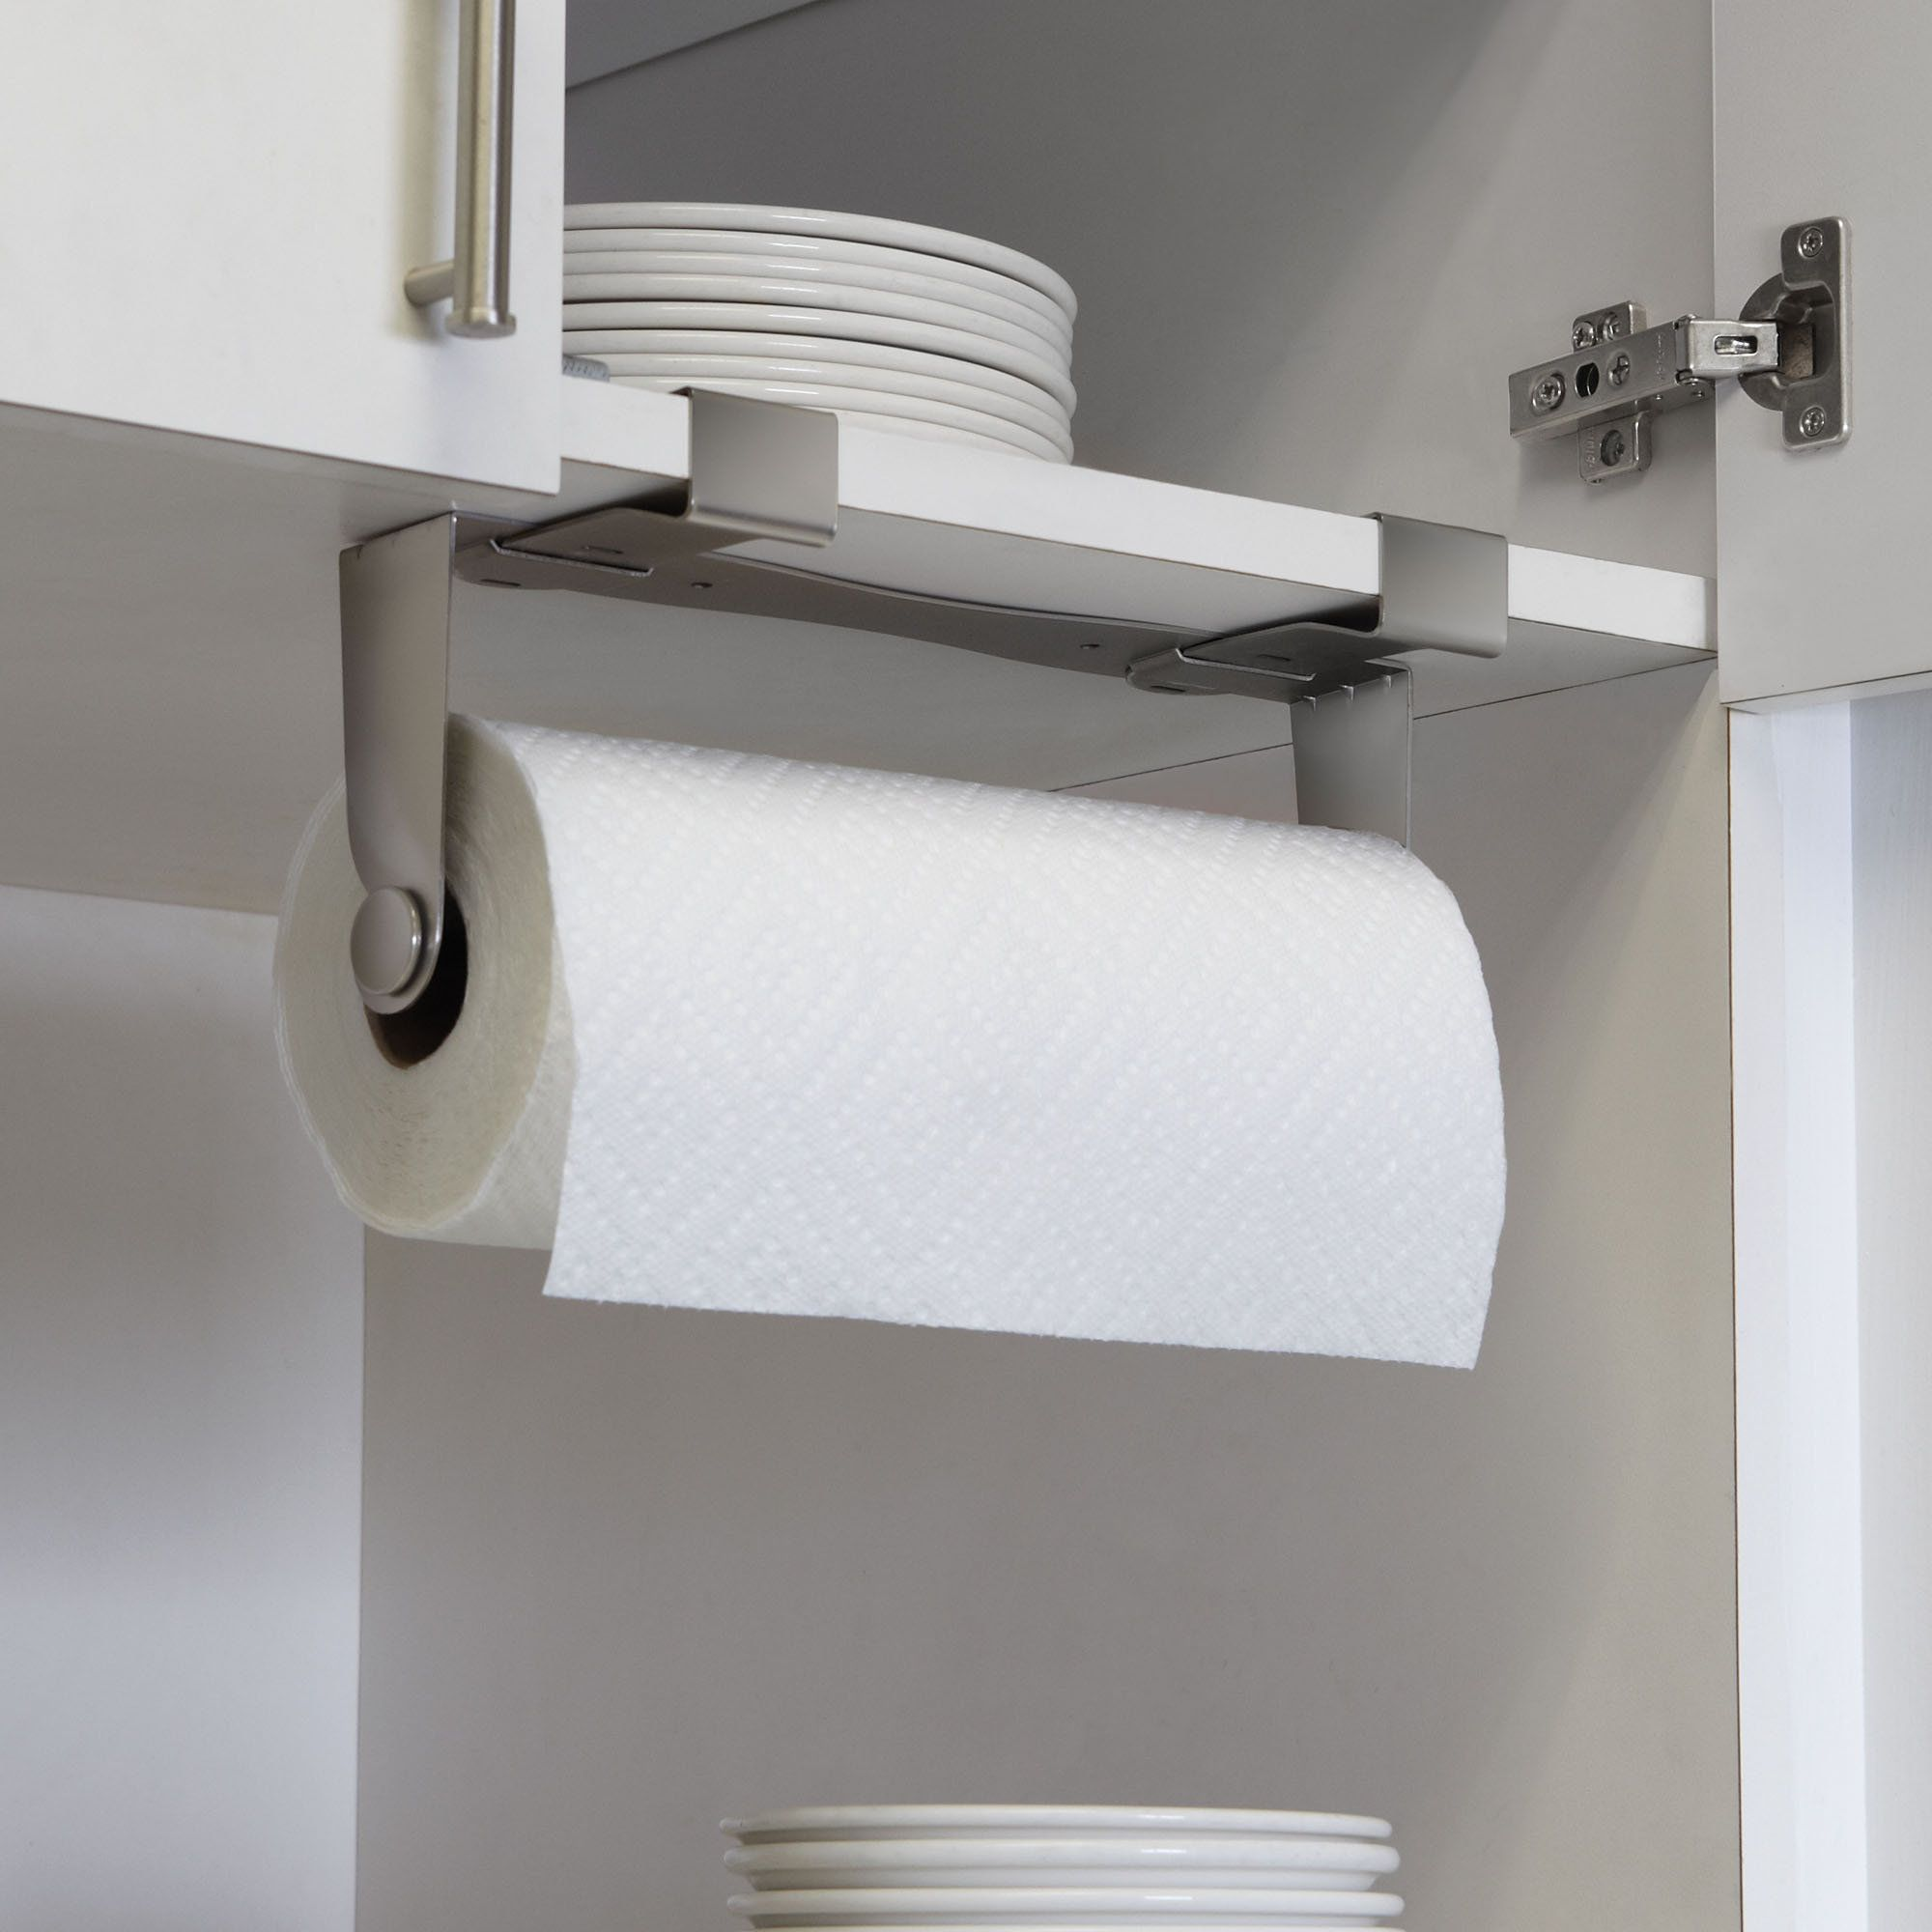 Bathroom Towel Dispenser Concept mountie paper towel holder | paper towel holders, towel holders